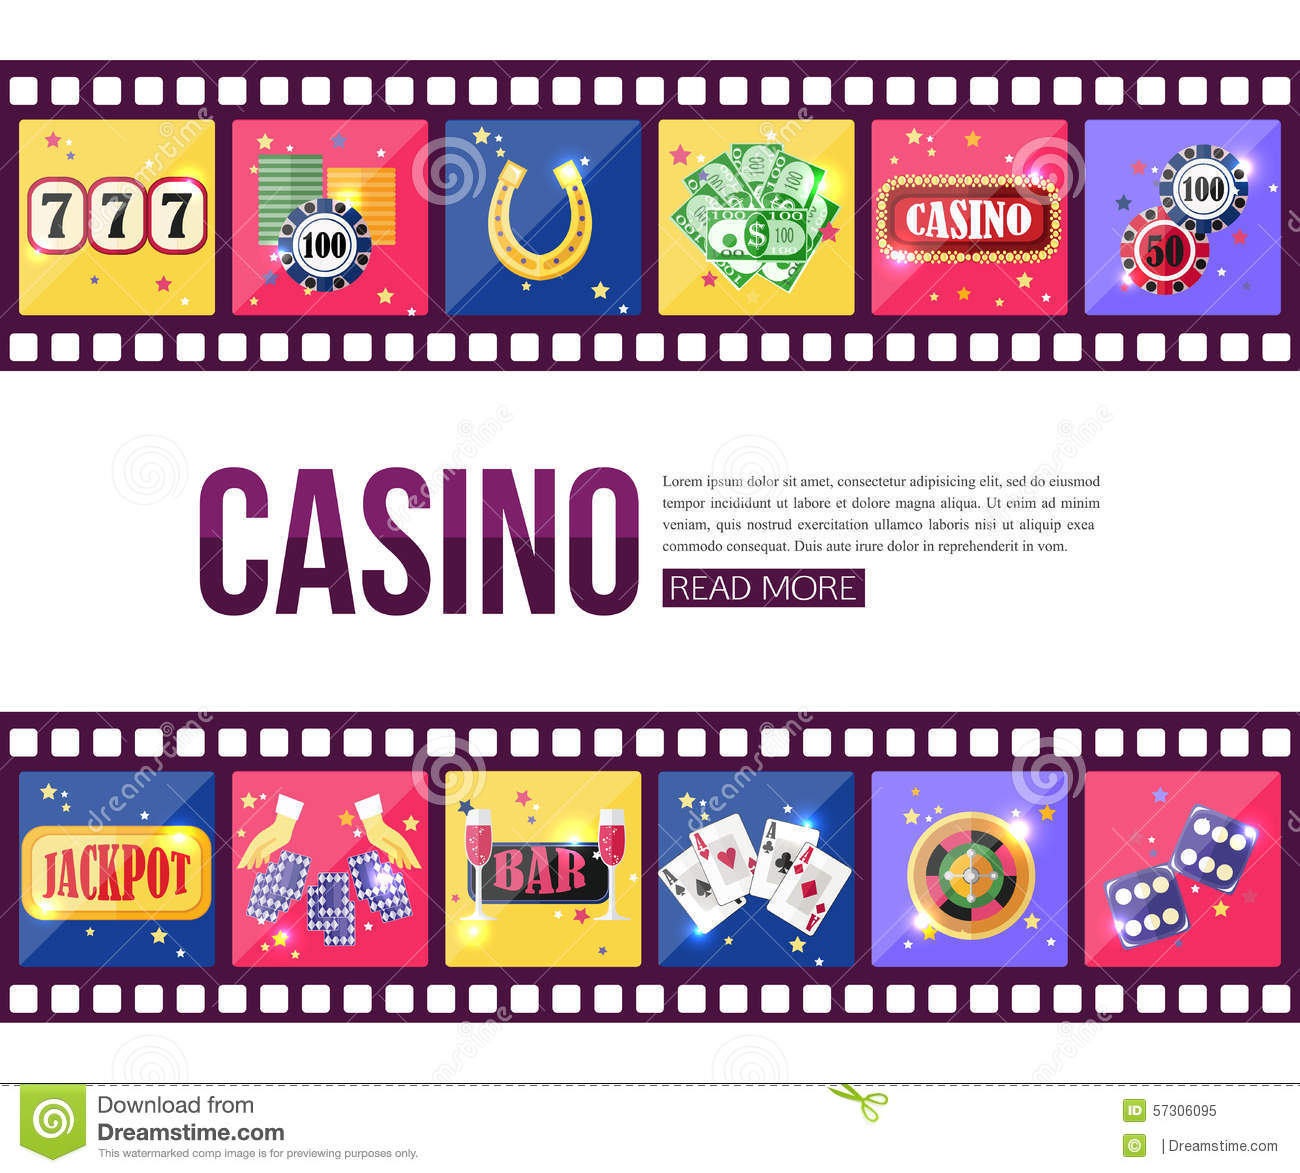 Money and casino pack for element 3d